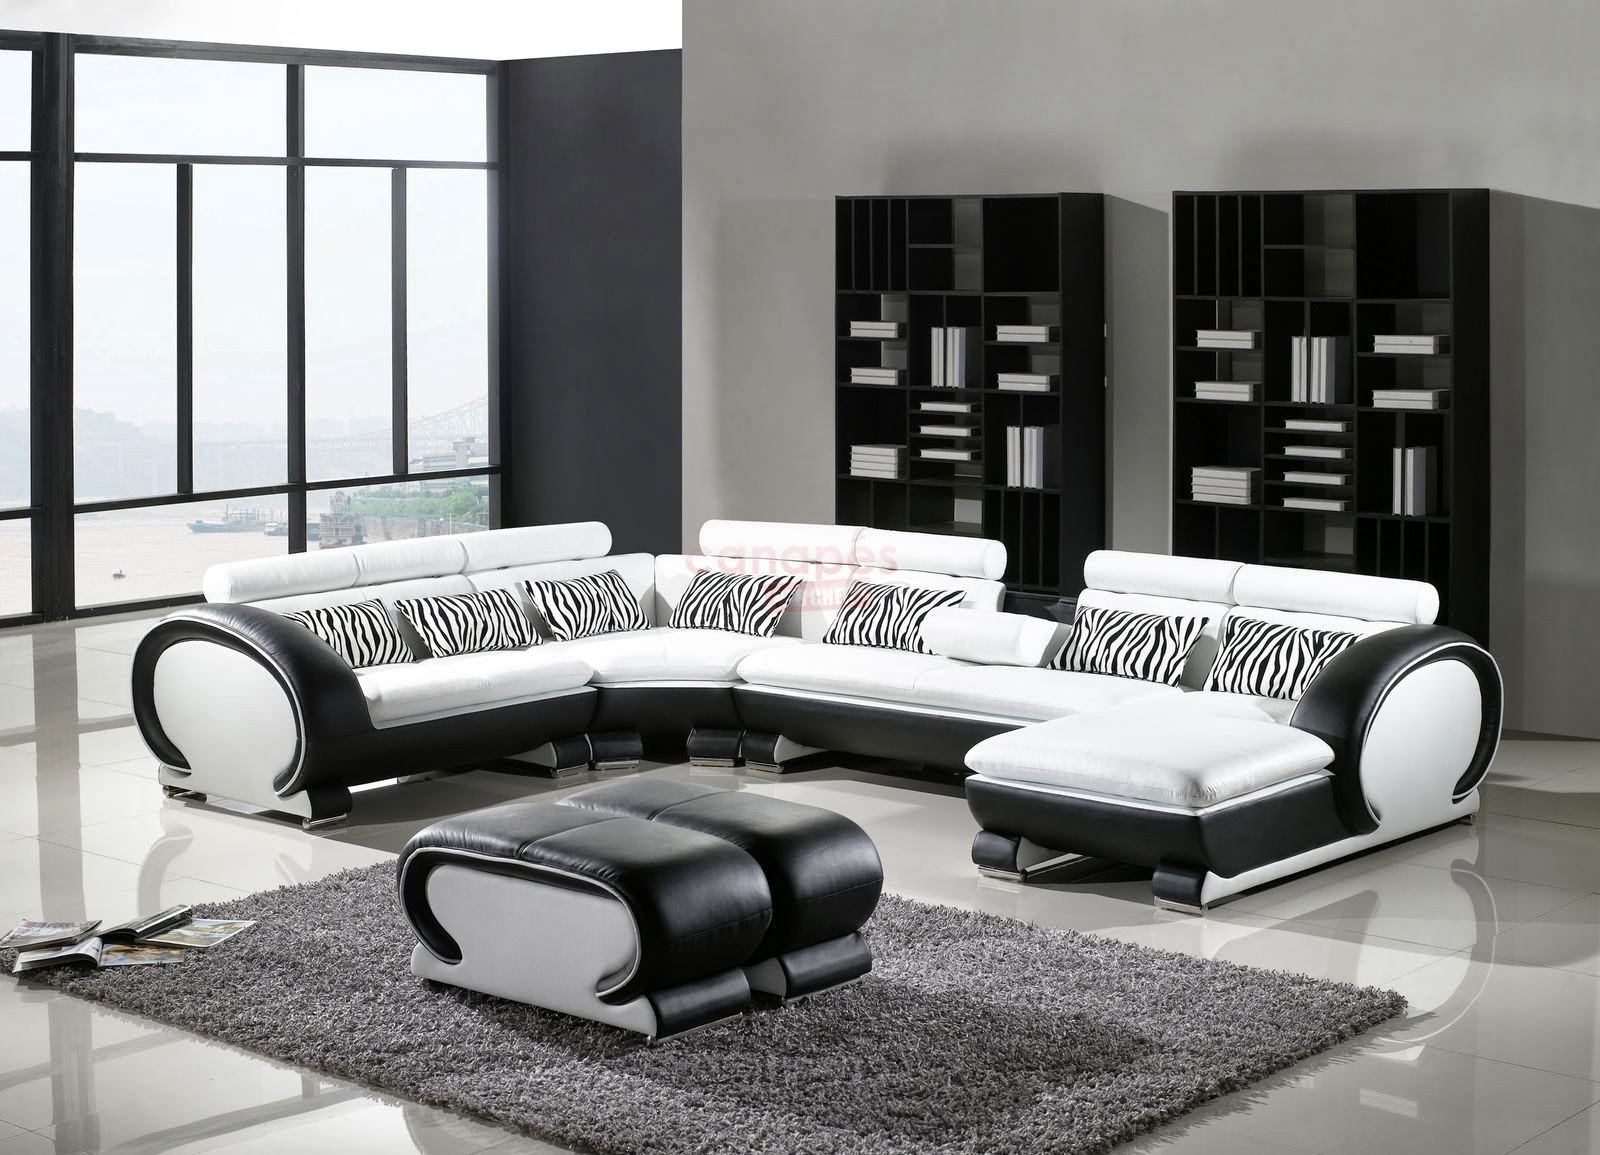 disposition de meubles dans une piece id es d co pour maison moderne. Black Bedroom Furniture Sets. Home Design Ideas